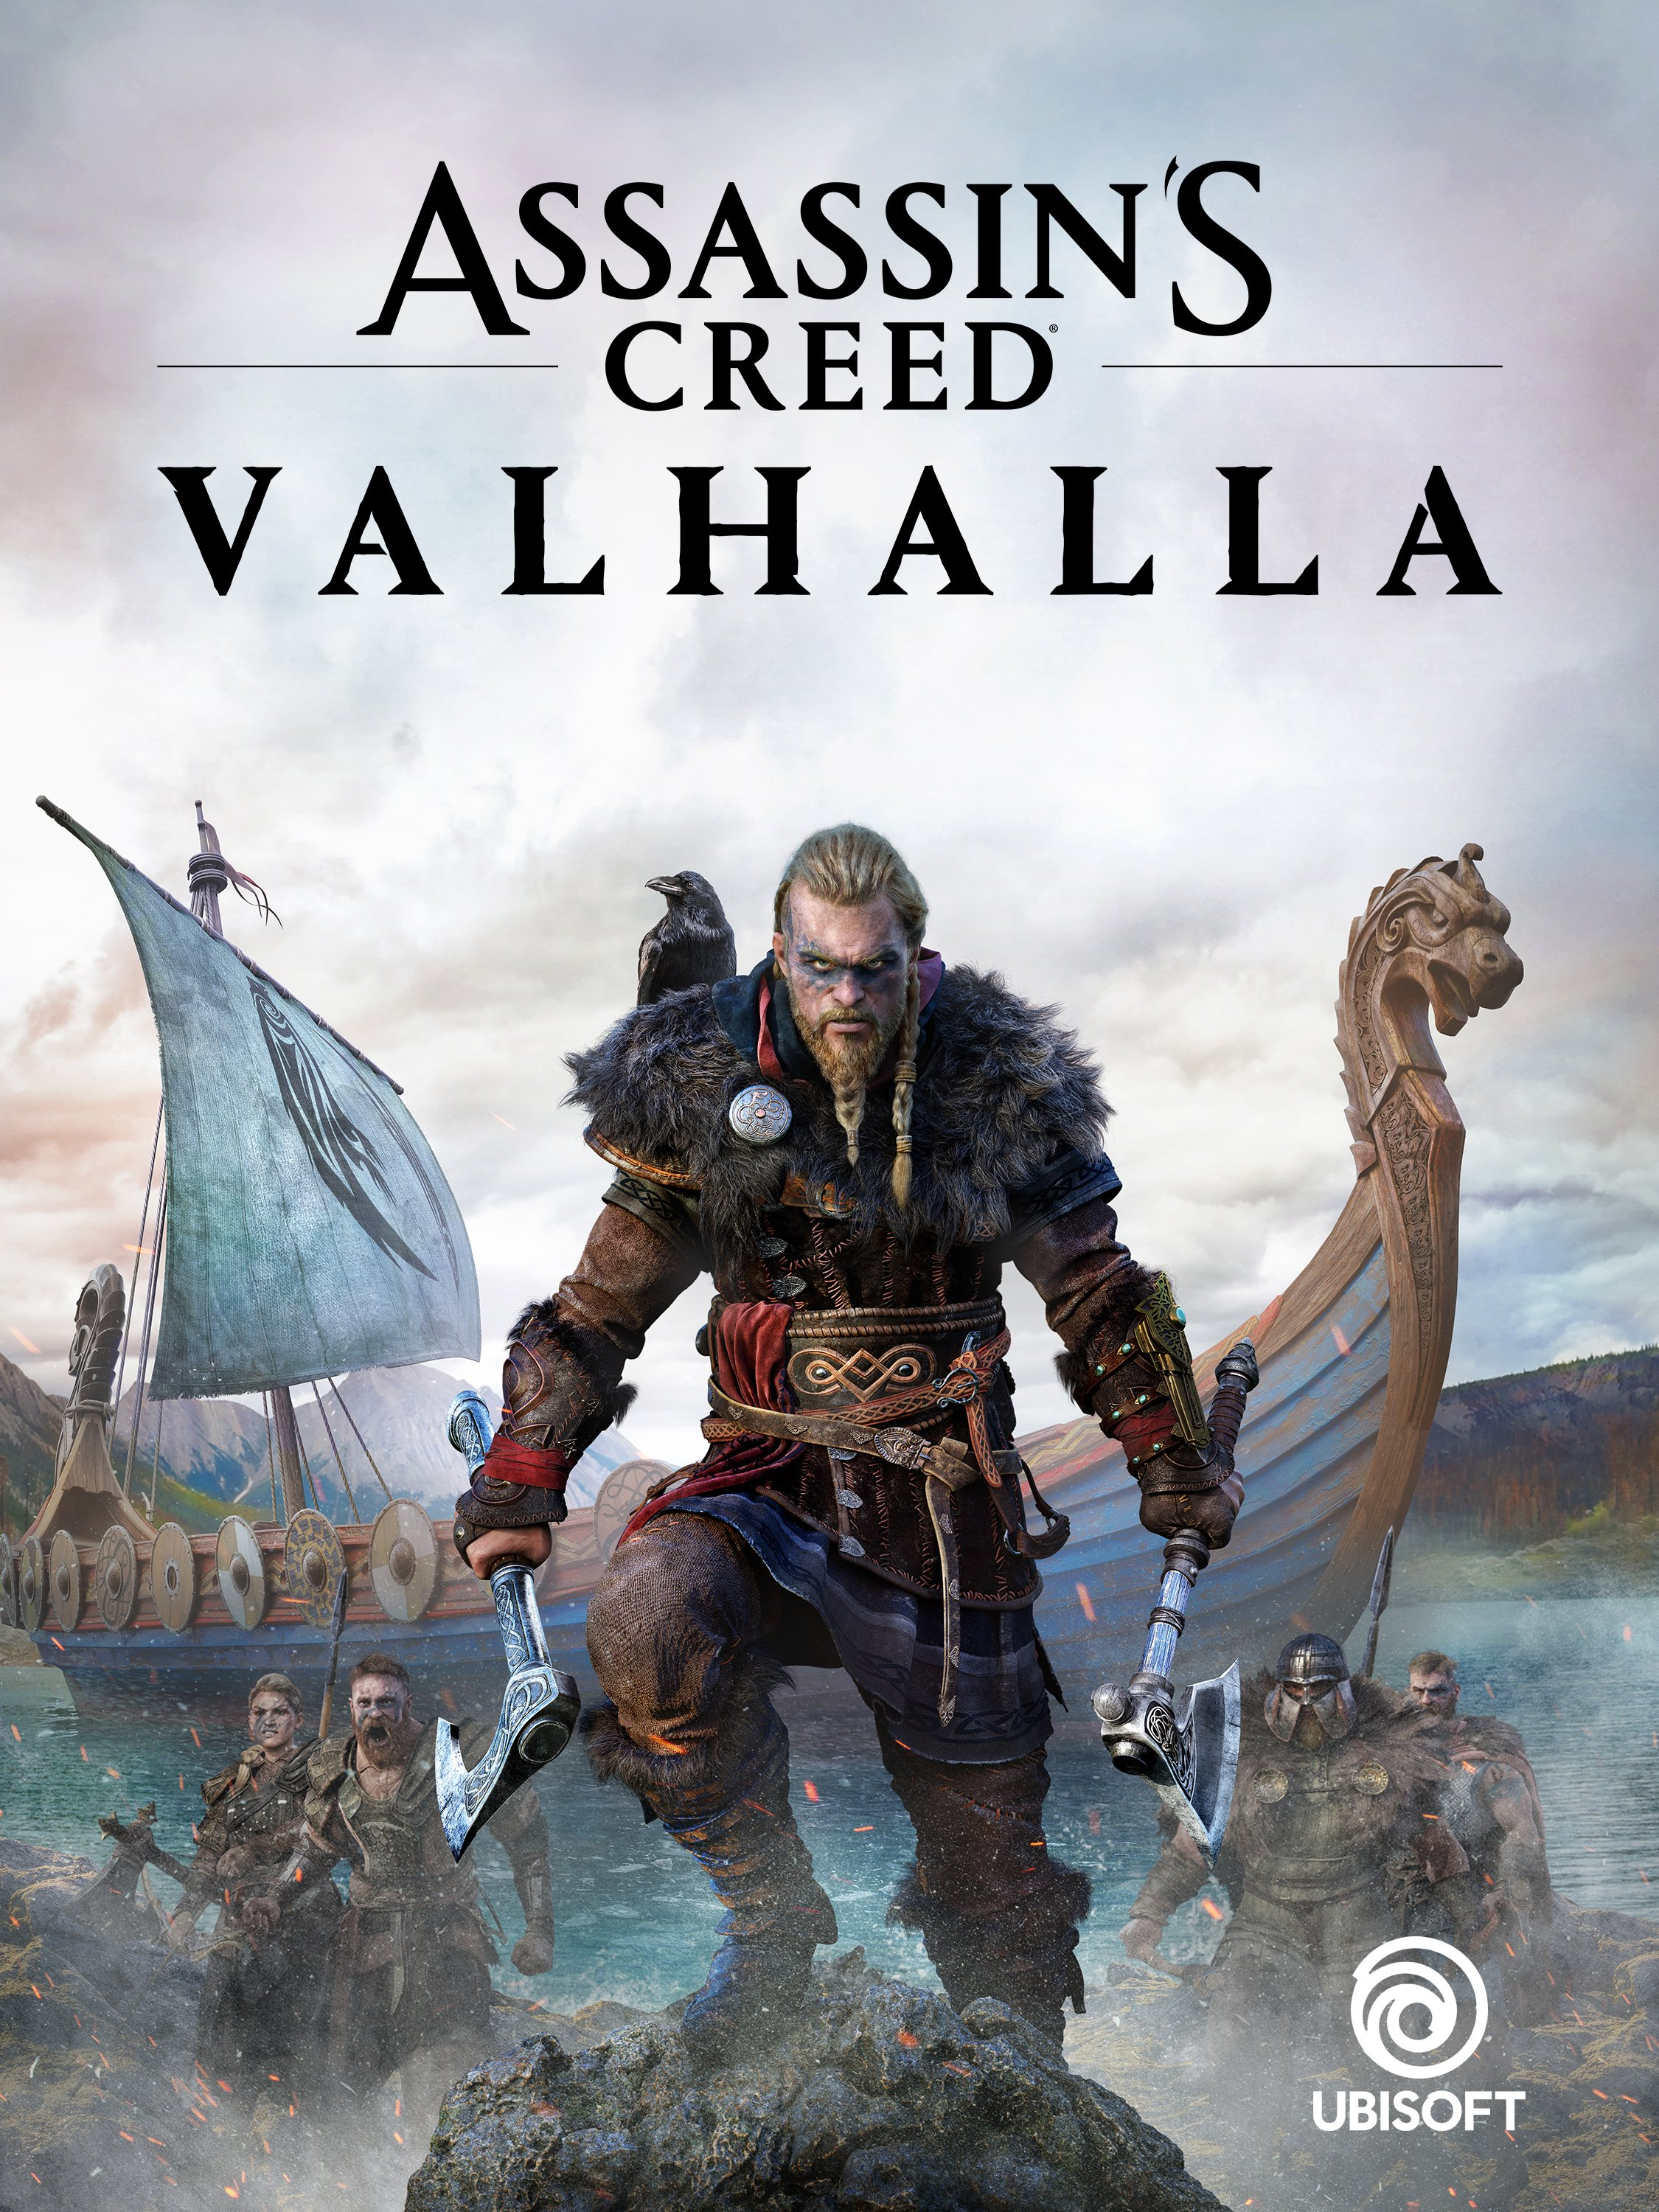 Poster Assassin's Creed: Valhalla v.1.1.2 (2020)